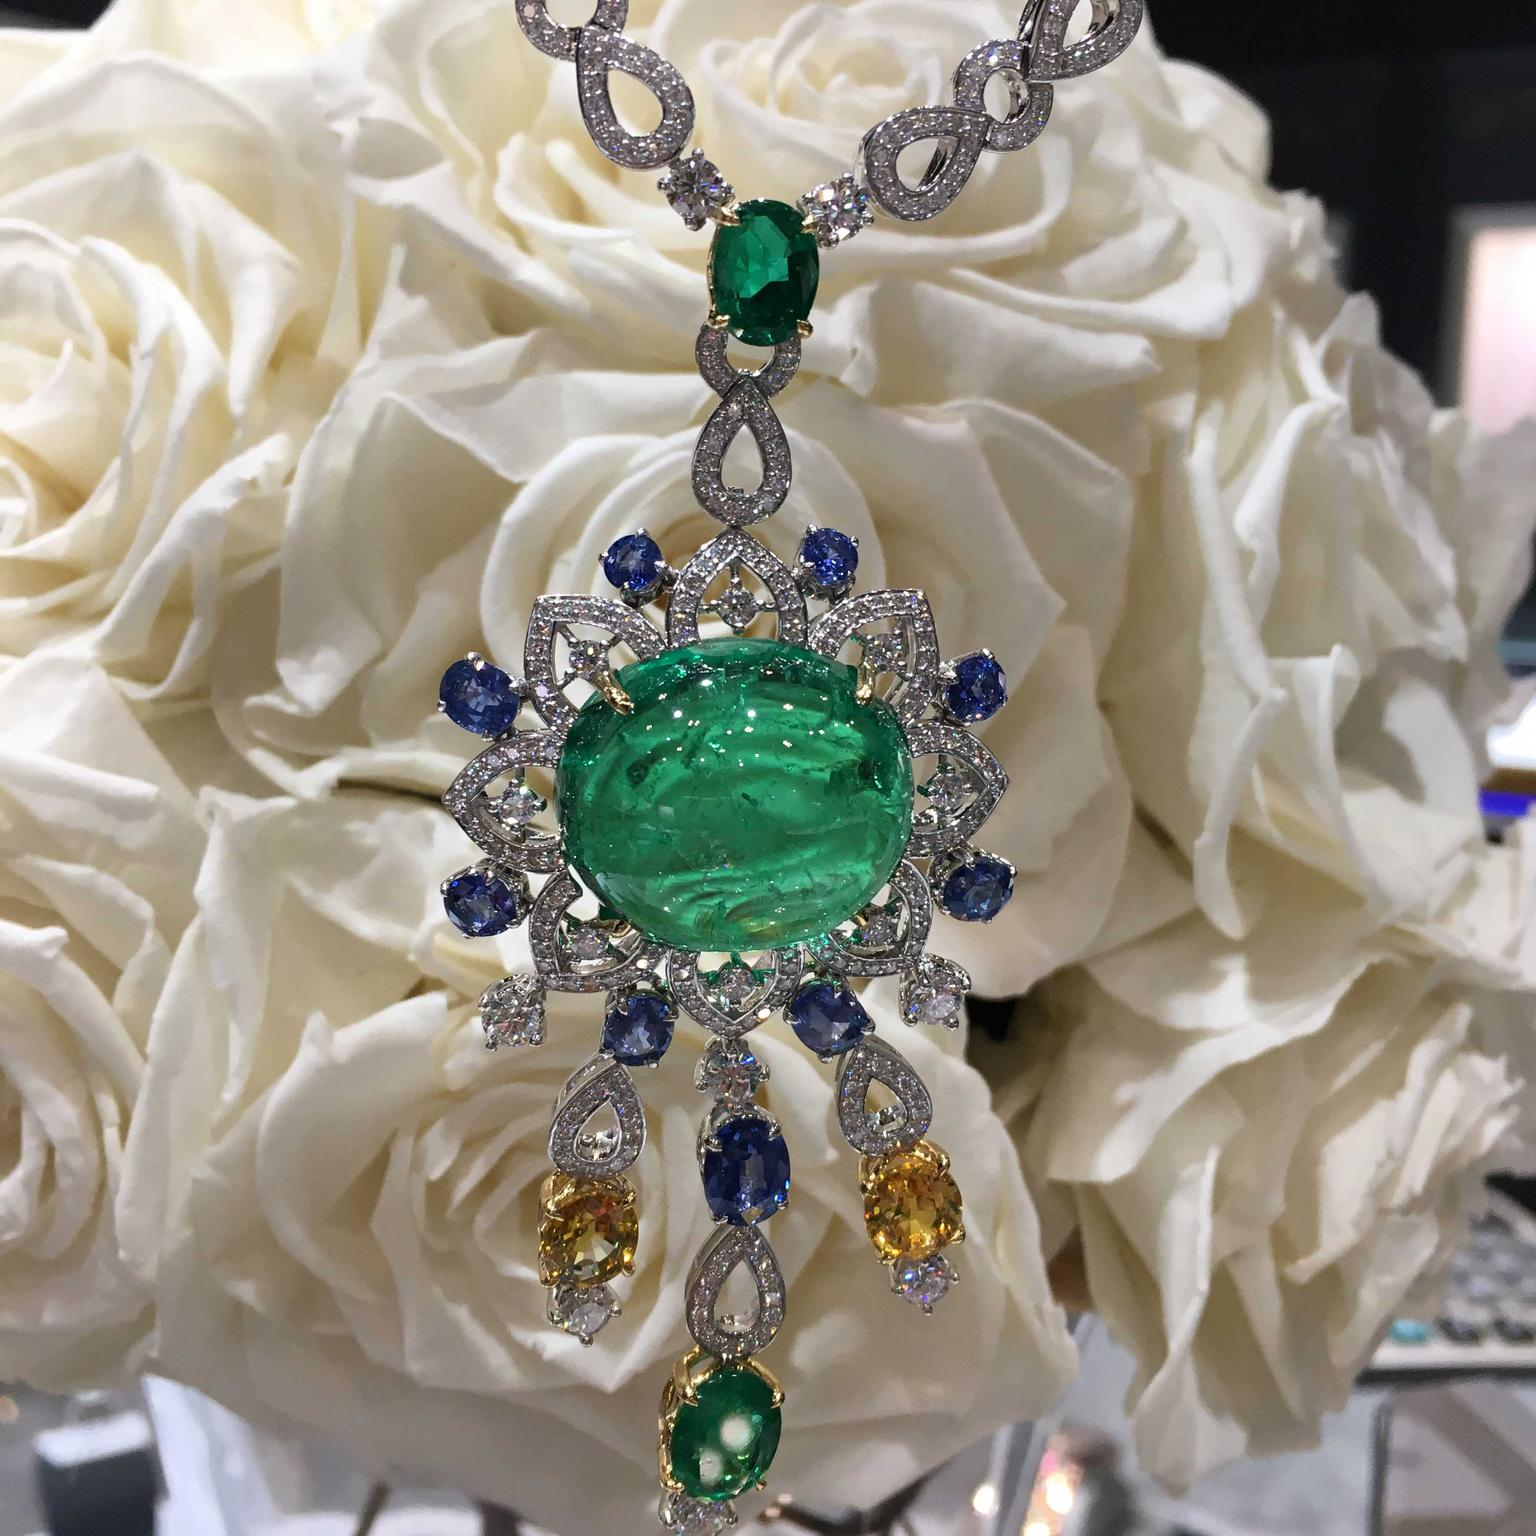 Mouawad necklace with a stunning 53 carat Colombian emerald cabochon at its centre.